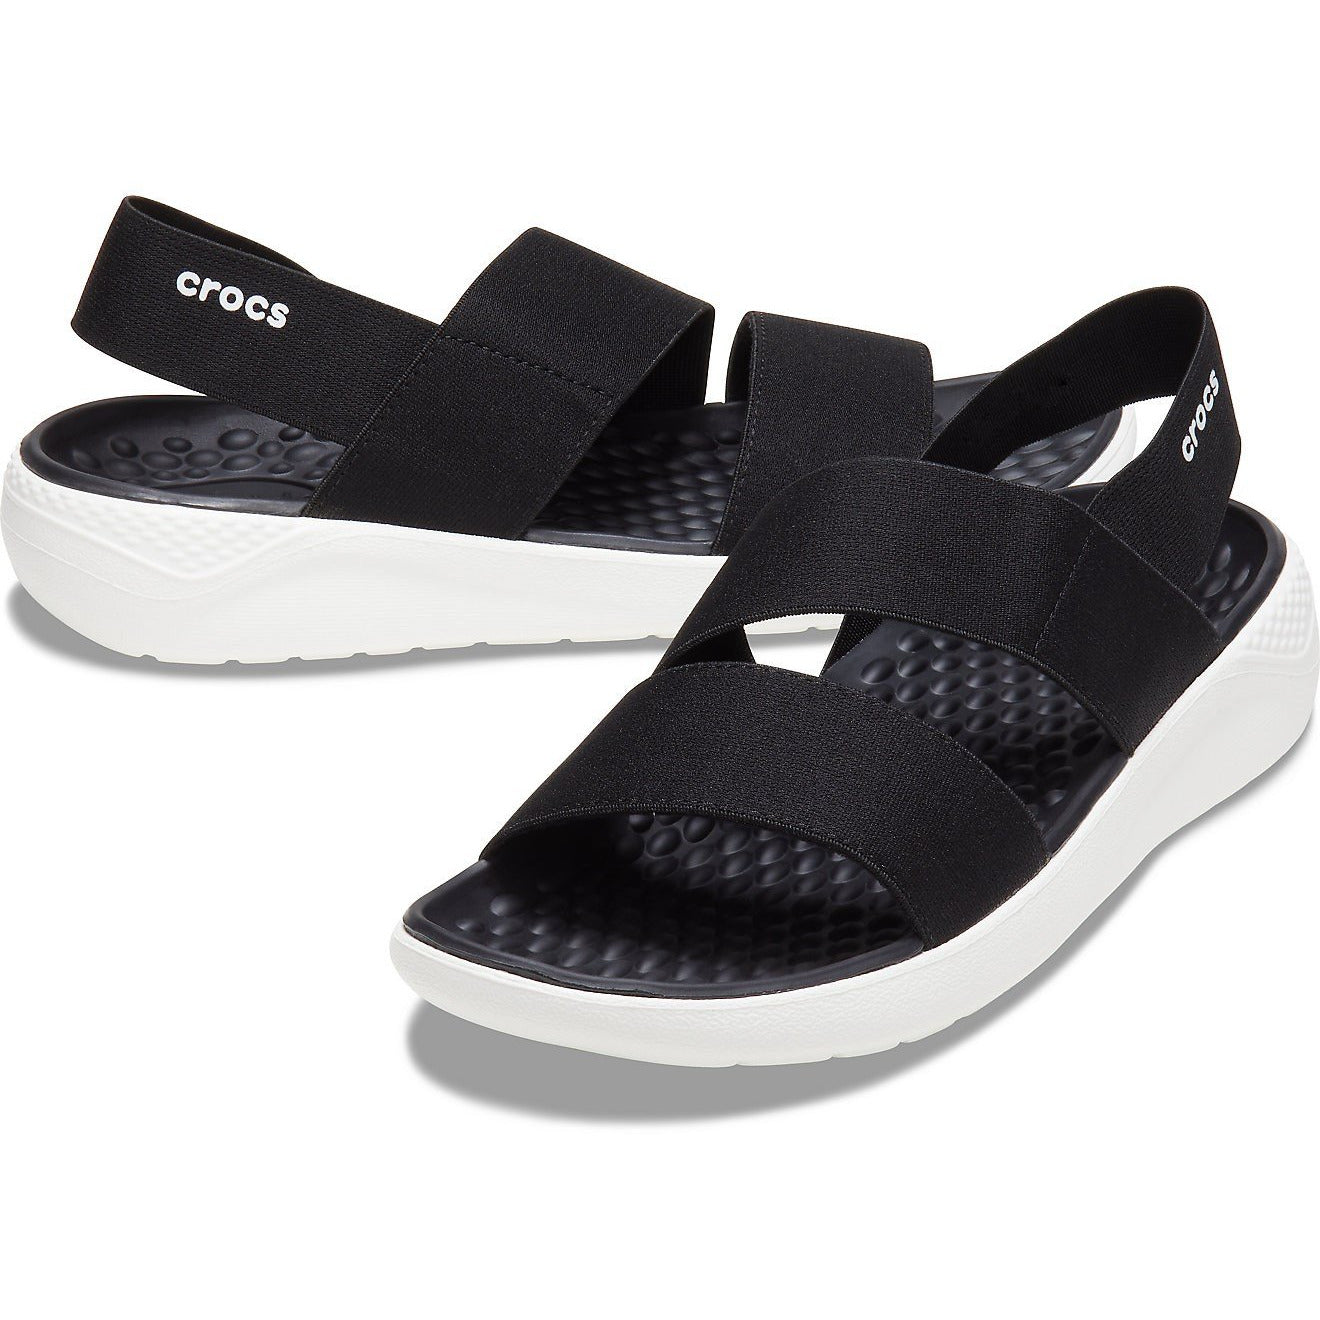 CROCS LITERIDE STRETCH SANDAL BLACK/WHITE